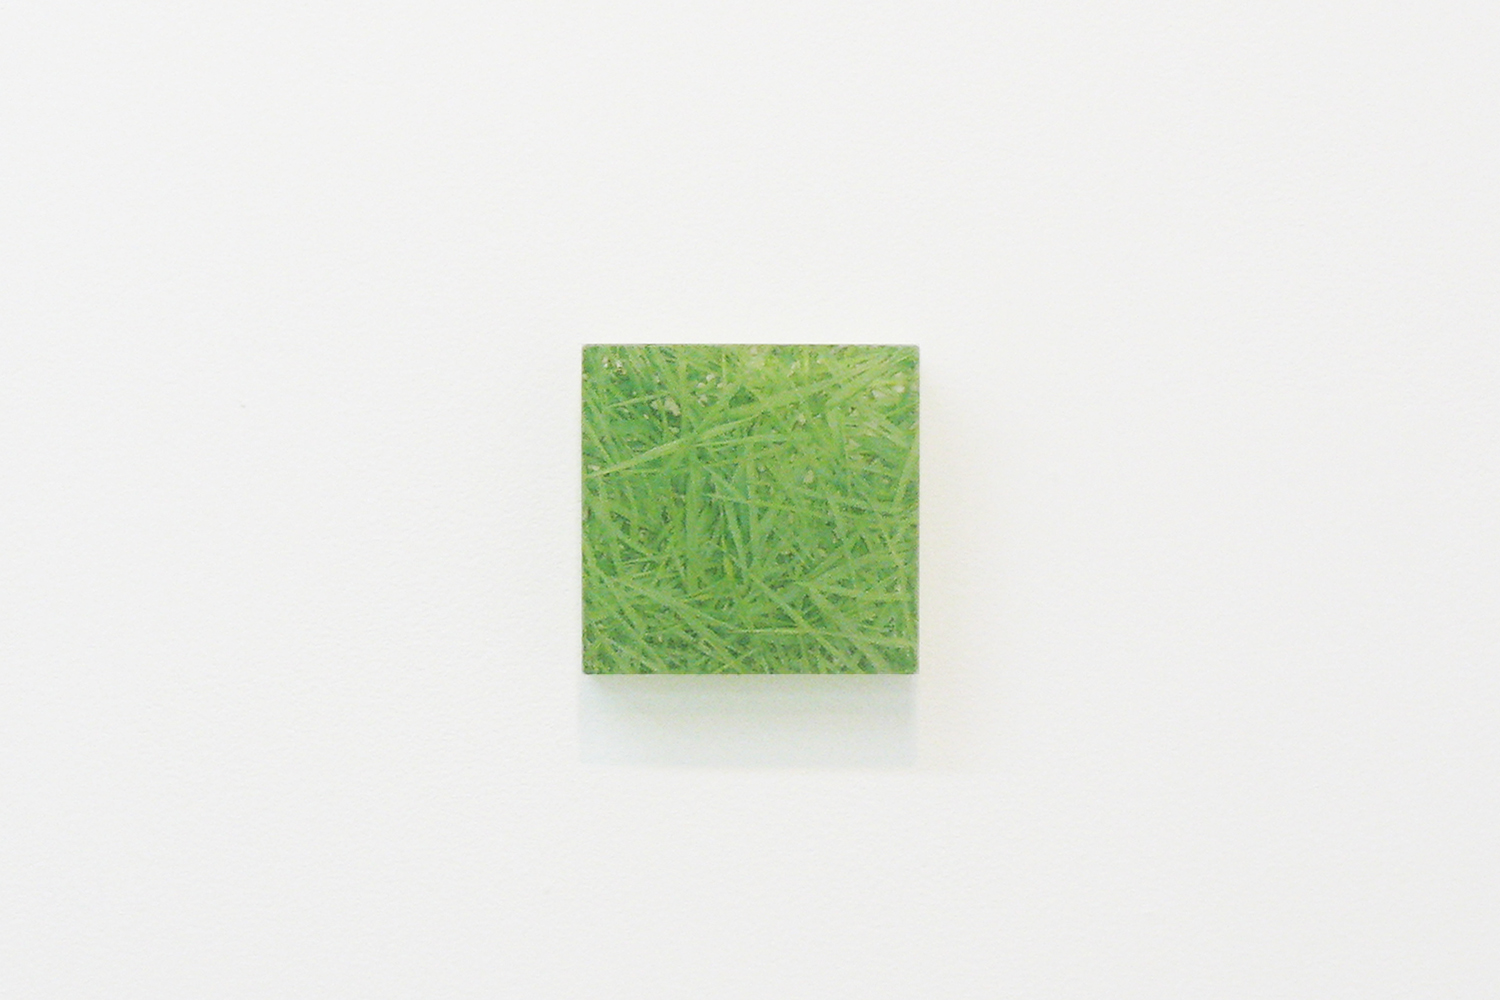 Photo painting [叢 grass 06-9.26]|oil on polyester resin panel and mixed media|9.9 x 10cm|2006